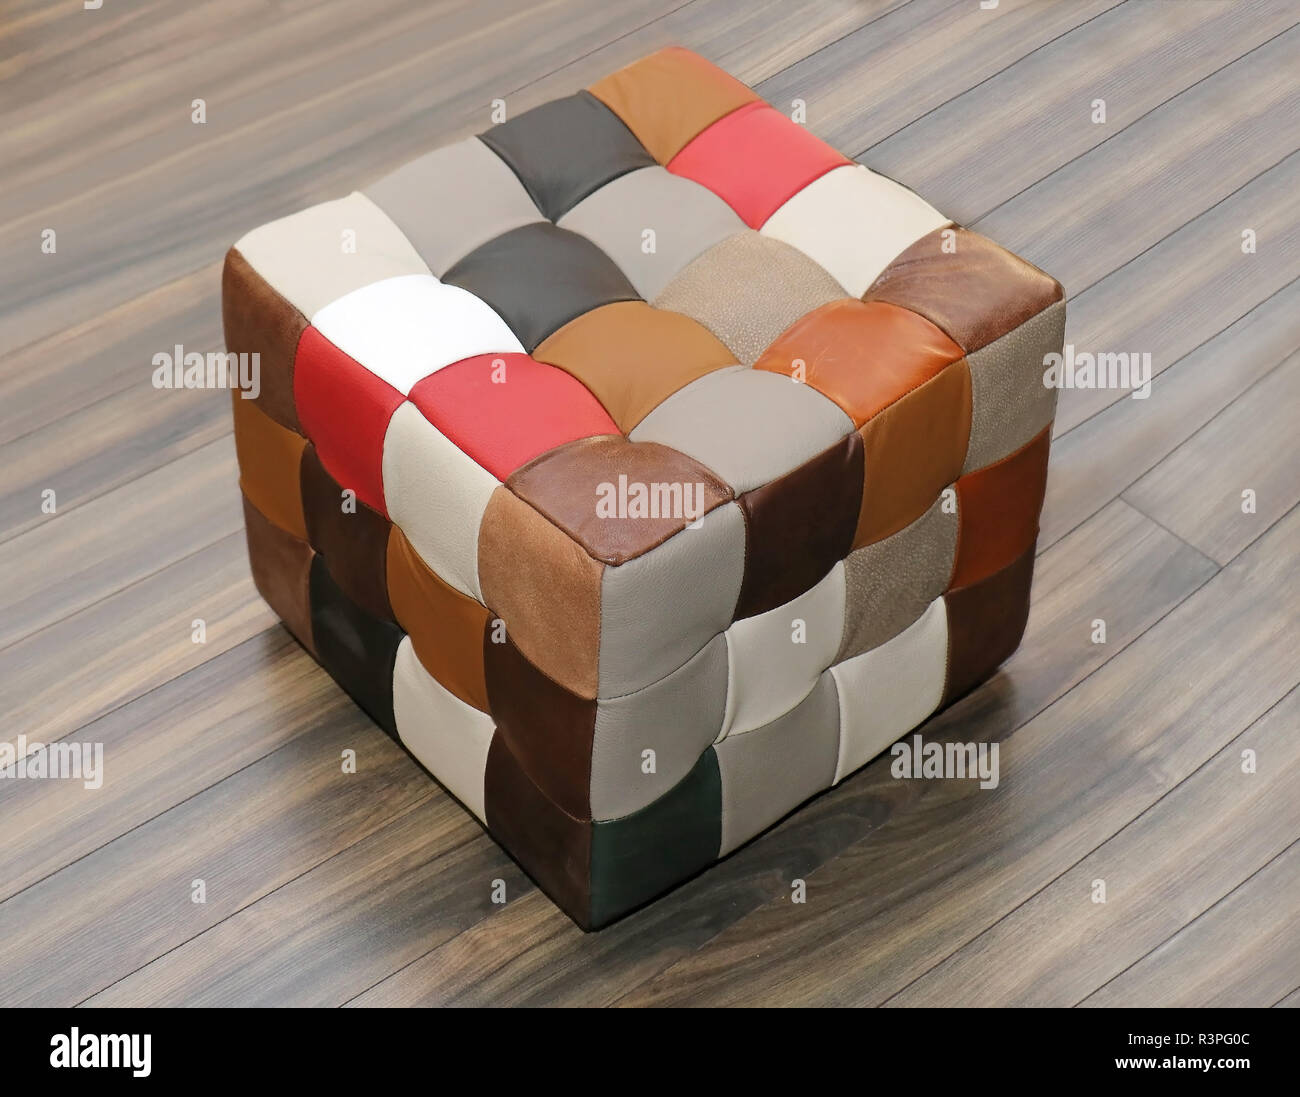 Small footstool furniture with colorful leather upholstery on wooden floor - Stock Image